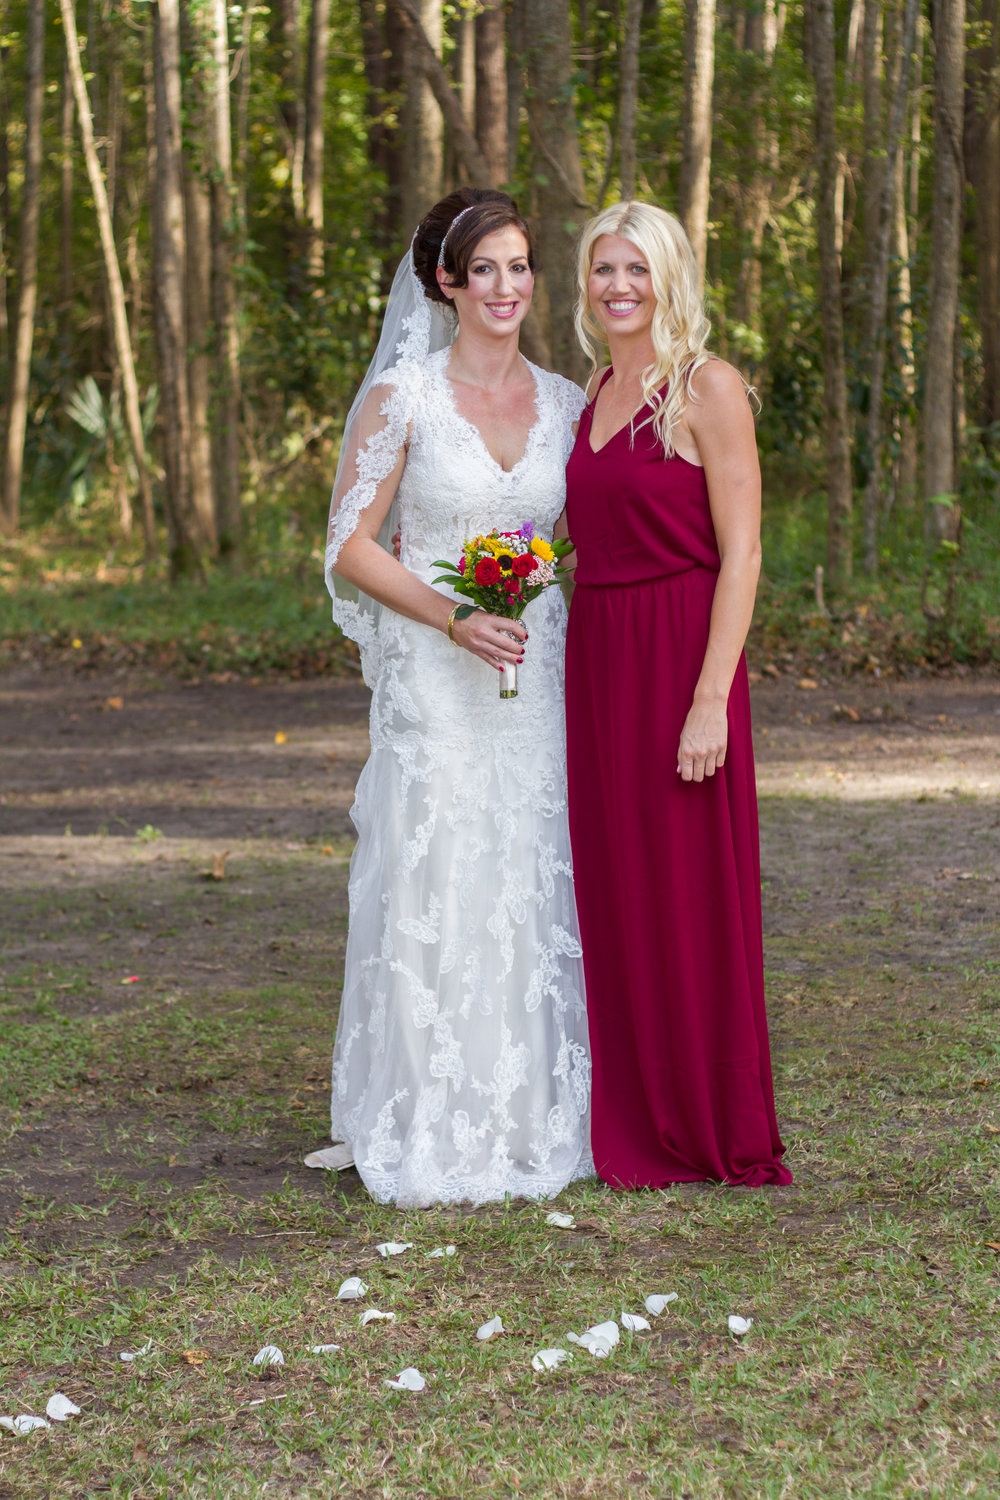 Jacqueline and Shawn Wedding (288 of 597).jpg